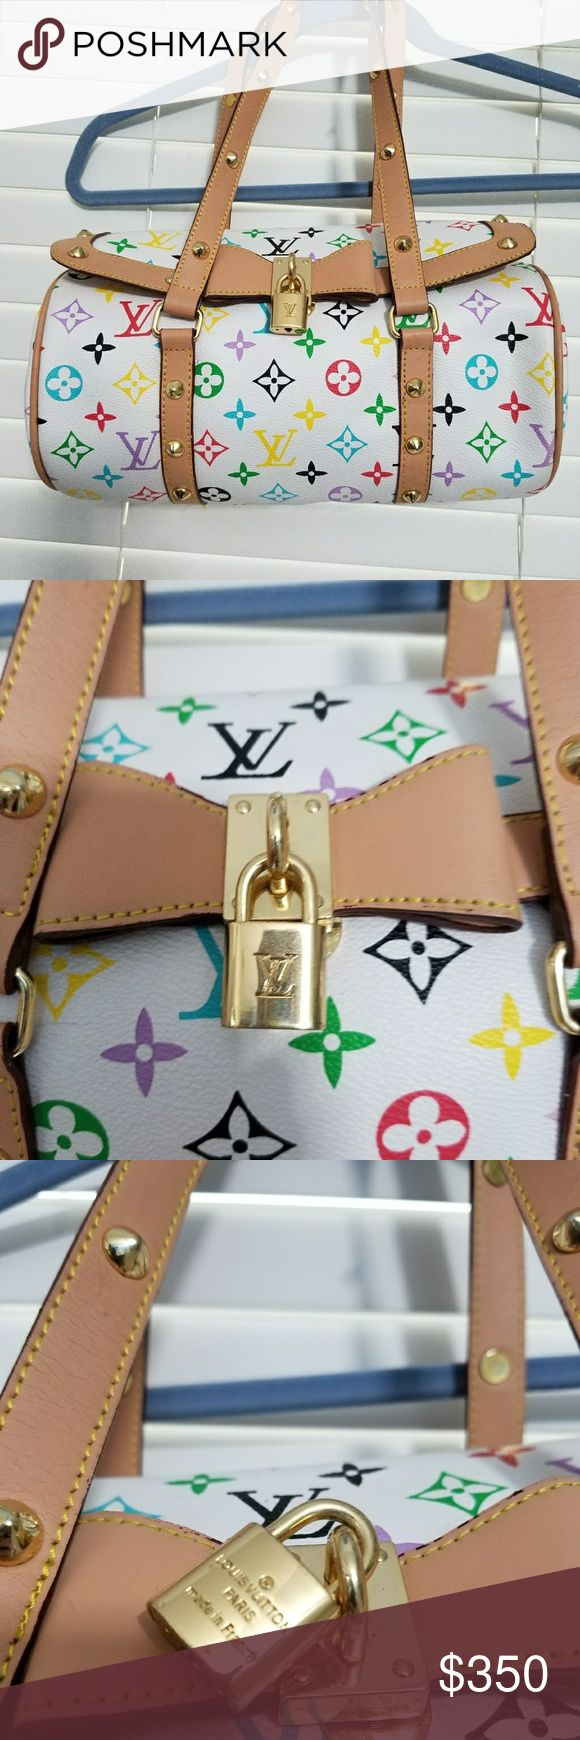 REALLY NICE MULTI COLOR MONOGRAM A fine example of the way a beautiful handbag should look. Light signs of use on straps not too significant or noticeable. Bright clean inside and out. Light scratching on the lock Over all this bag looks great. Please ask any questions about the bag. THE ANSWER IS NO! Bags Shoulder Bags